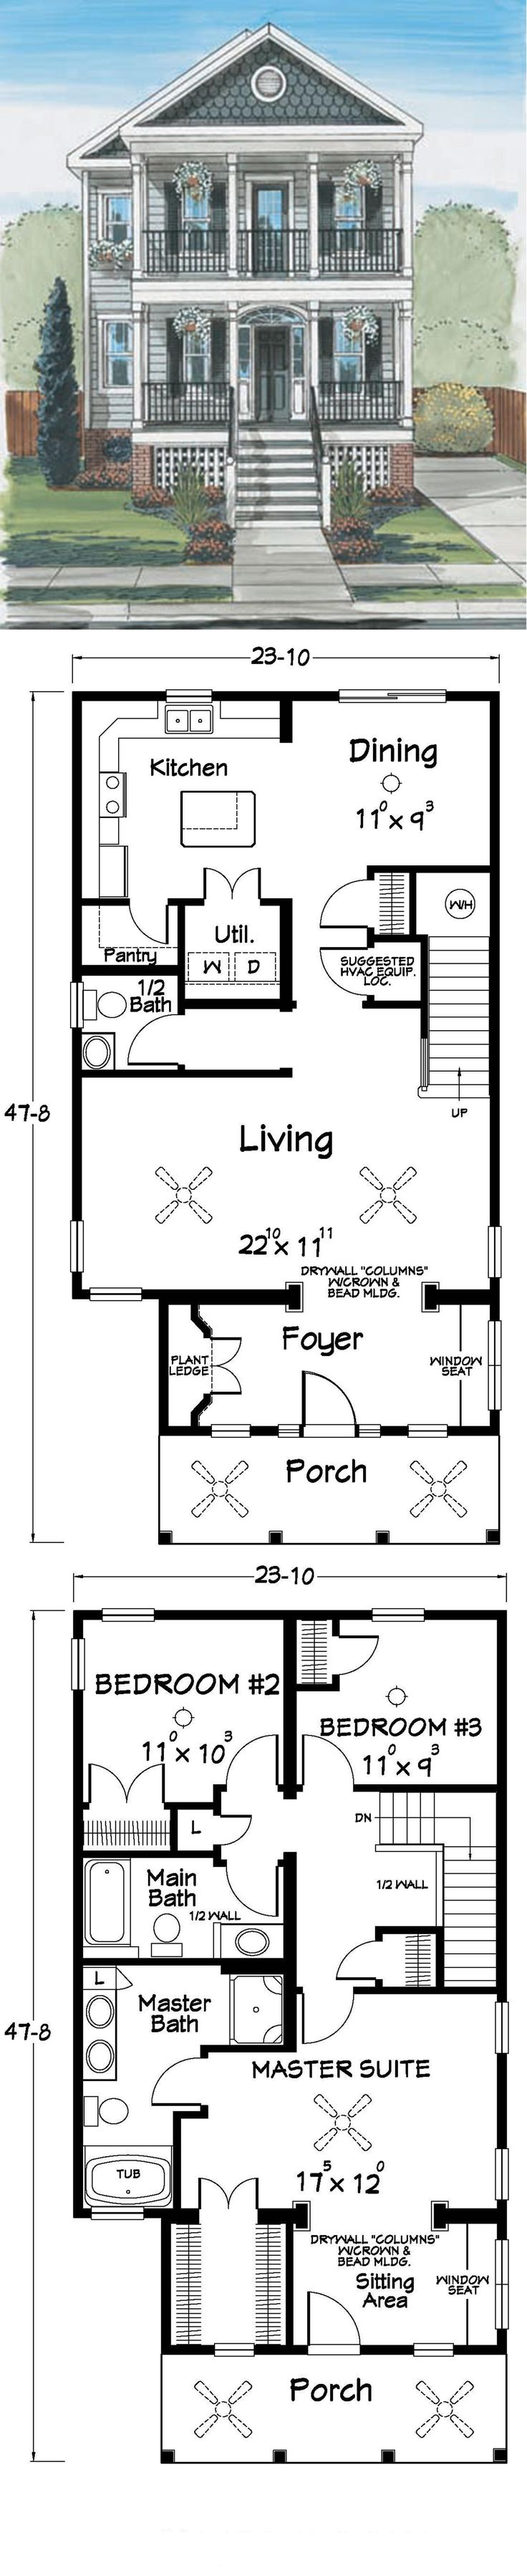 Best 25+ Small Floor Plans Ideas On Pinterest | Small Cottage Plans, Small  Home Plans And Small Cottage House Plans